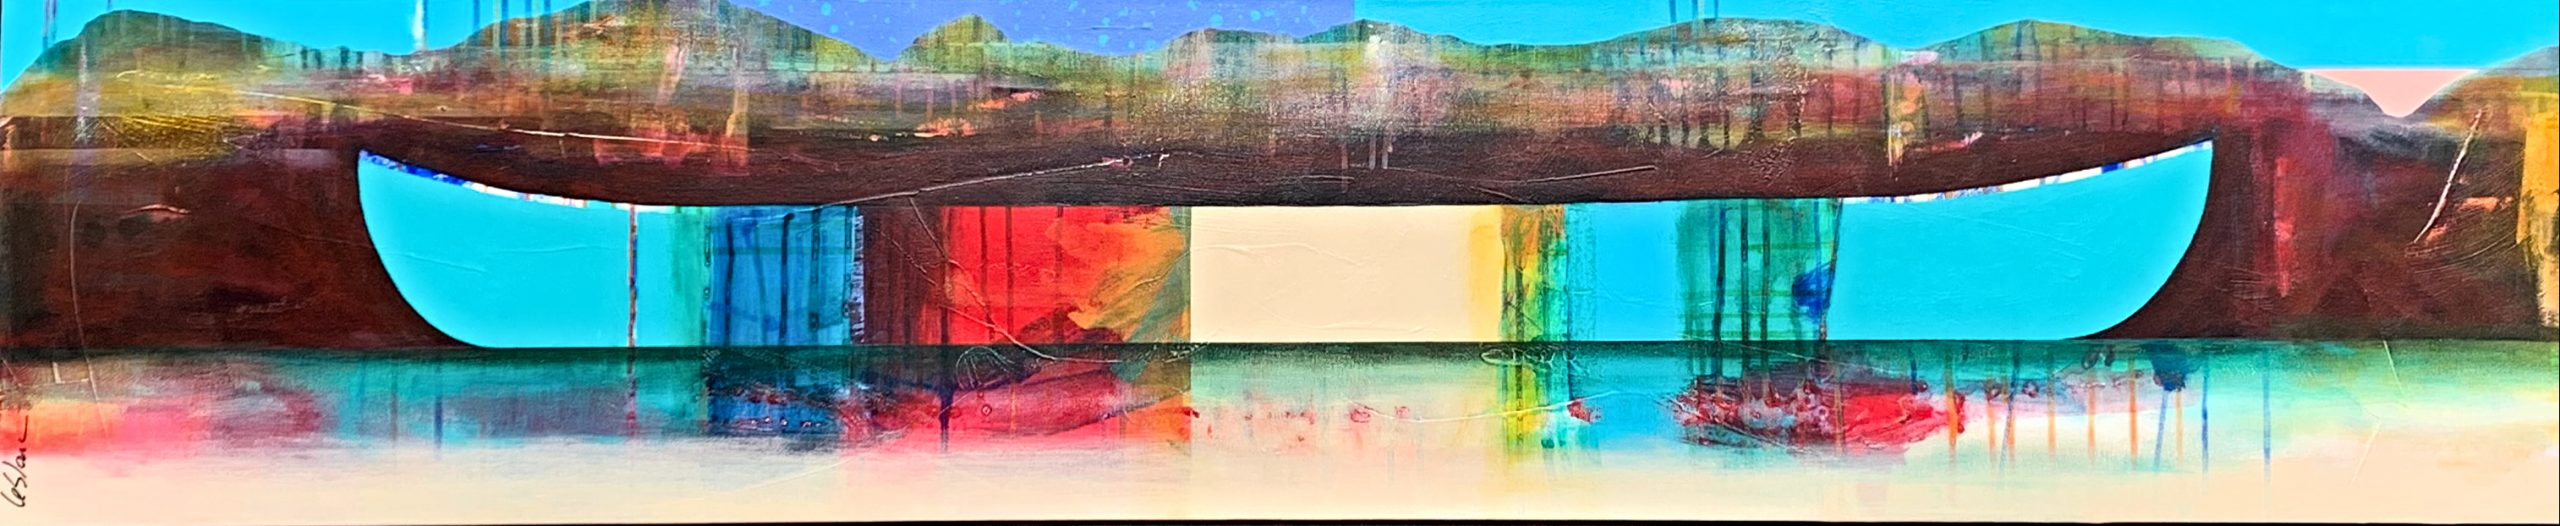 Loin des côtes, mixed media canoe painting by Sylvain Leblanc   Effusion Art Gallery + Cast Glass Studio, Invermere BC